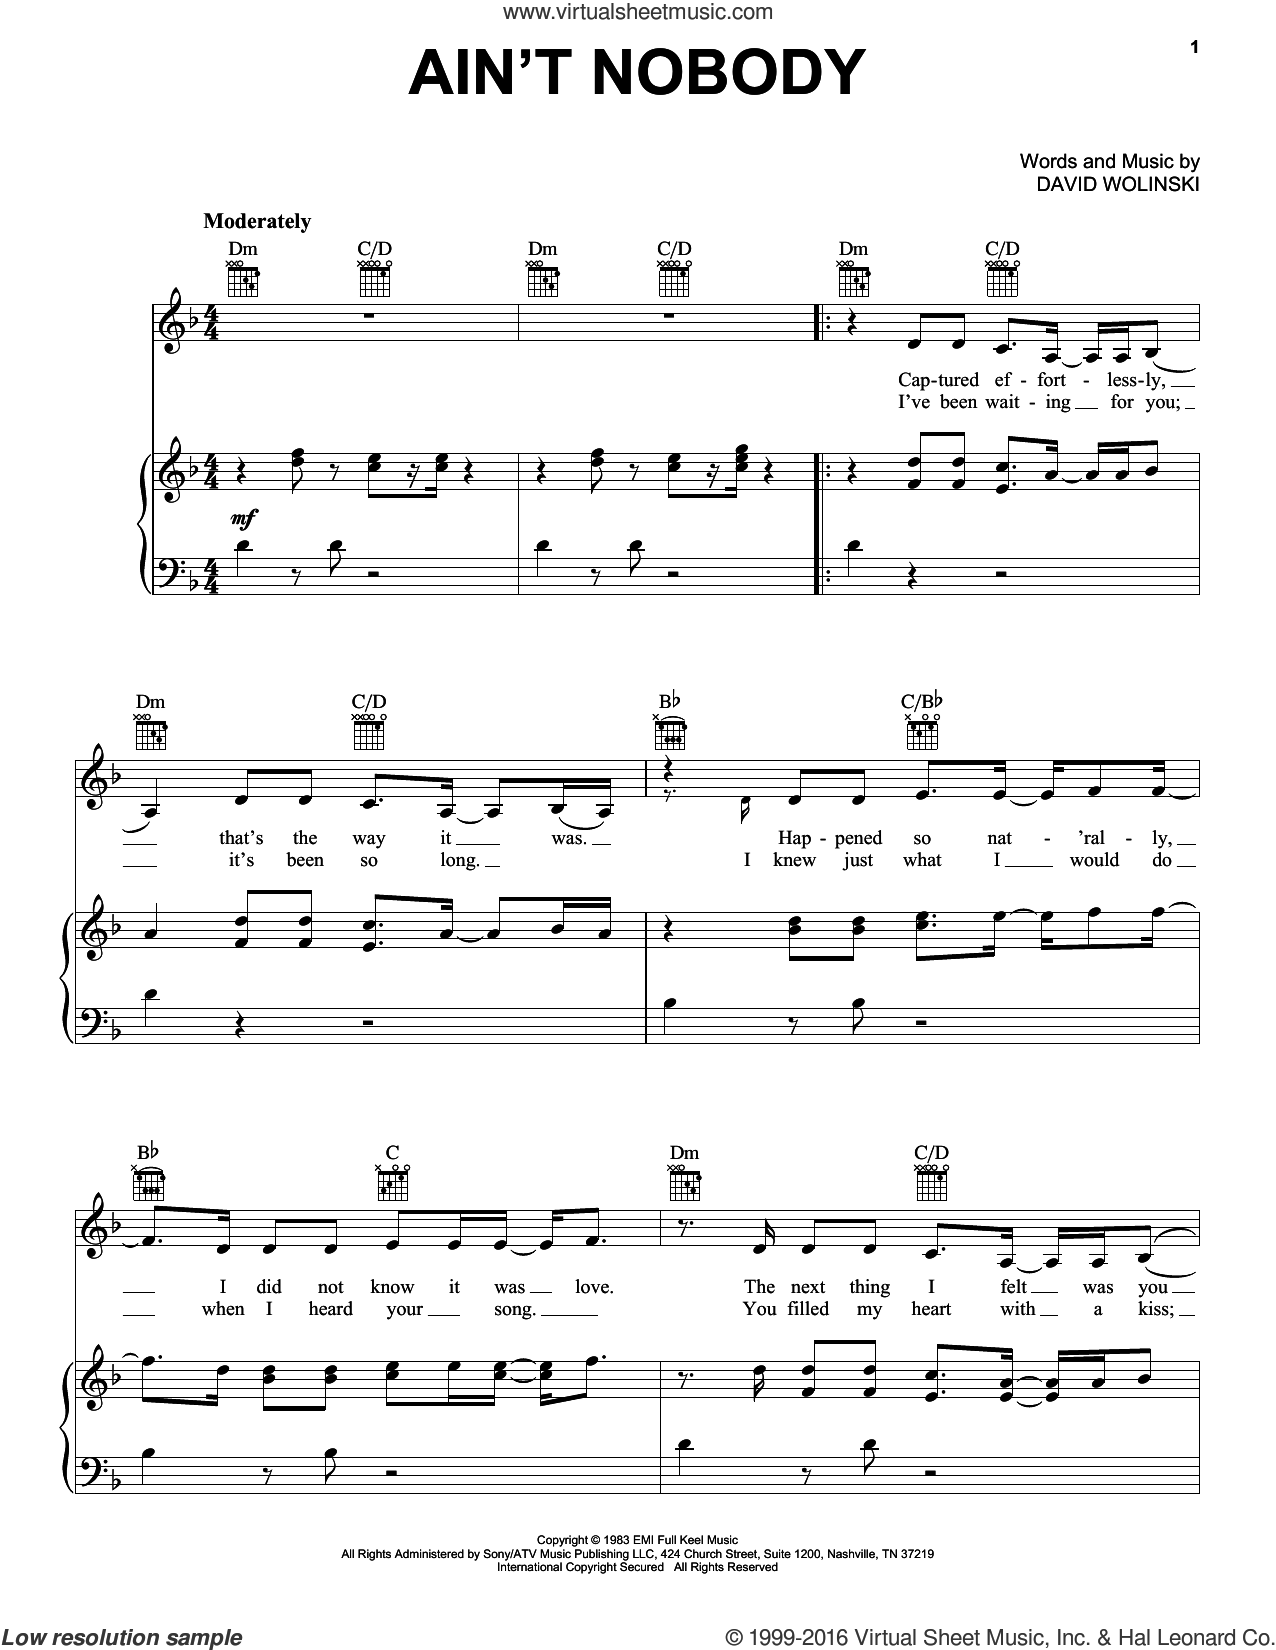 Ain't Nobody sheet music for voice, piano or guitar by Jasmine Thompson, Chaka Khan and David Wolinski, intermediate skill level